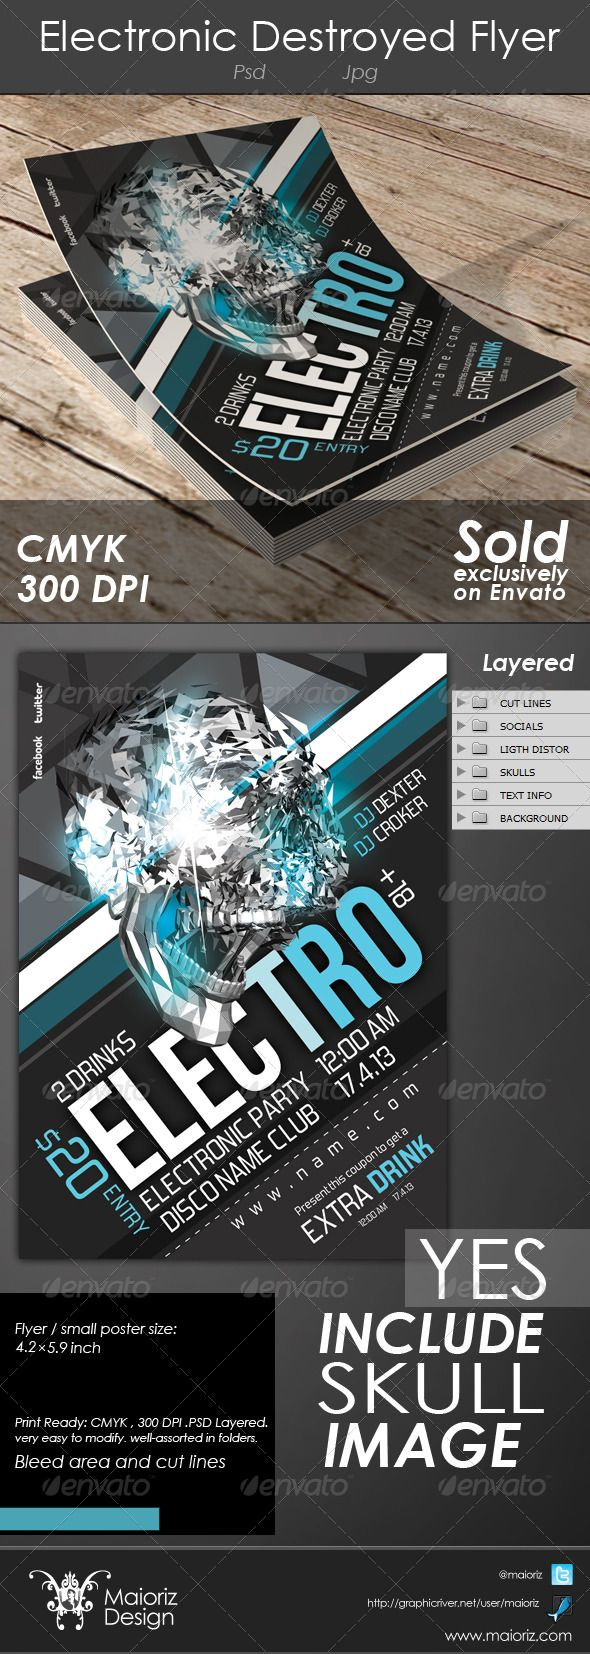 Electronic Destroyed Flyer  #GraphicRiver                                4.21×5.90 print dimension with Bleed, Well Layered Organised, 300 DPI , CMYK , Print ready, Fully Editable, Text/fonts/colors editable, Very Easy to Customise. includes BIG skull 3D image. 	 Font used:  Font used: bebas and forgotten-futurist More info on help File.          Created: 29March13 GraphicsFilesIncluded: PhotoshopPSD #JPGImage Layered: Yes MinimumAdobeCSVersion: CS PrintDimensions: 4.21x5.90 Tags: acid…